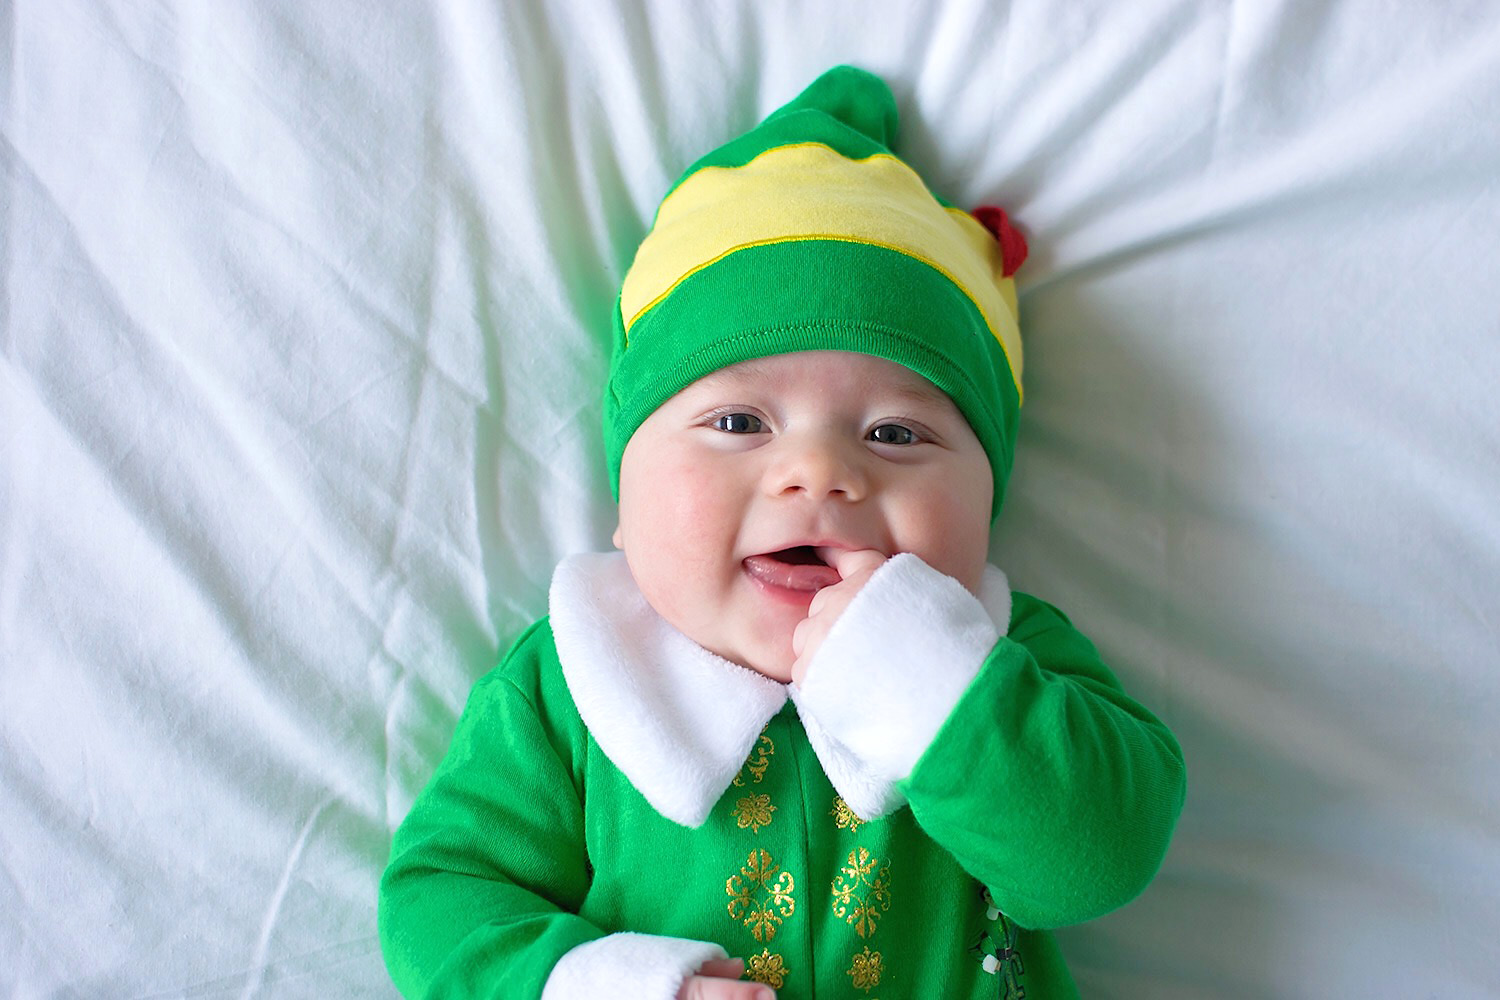 Baby Jesse Blue at 4 months old - Newborn baby boy dressed in ASDA George elf movie outfit for Christmas festivities